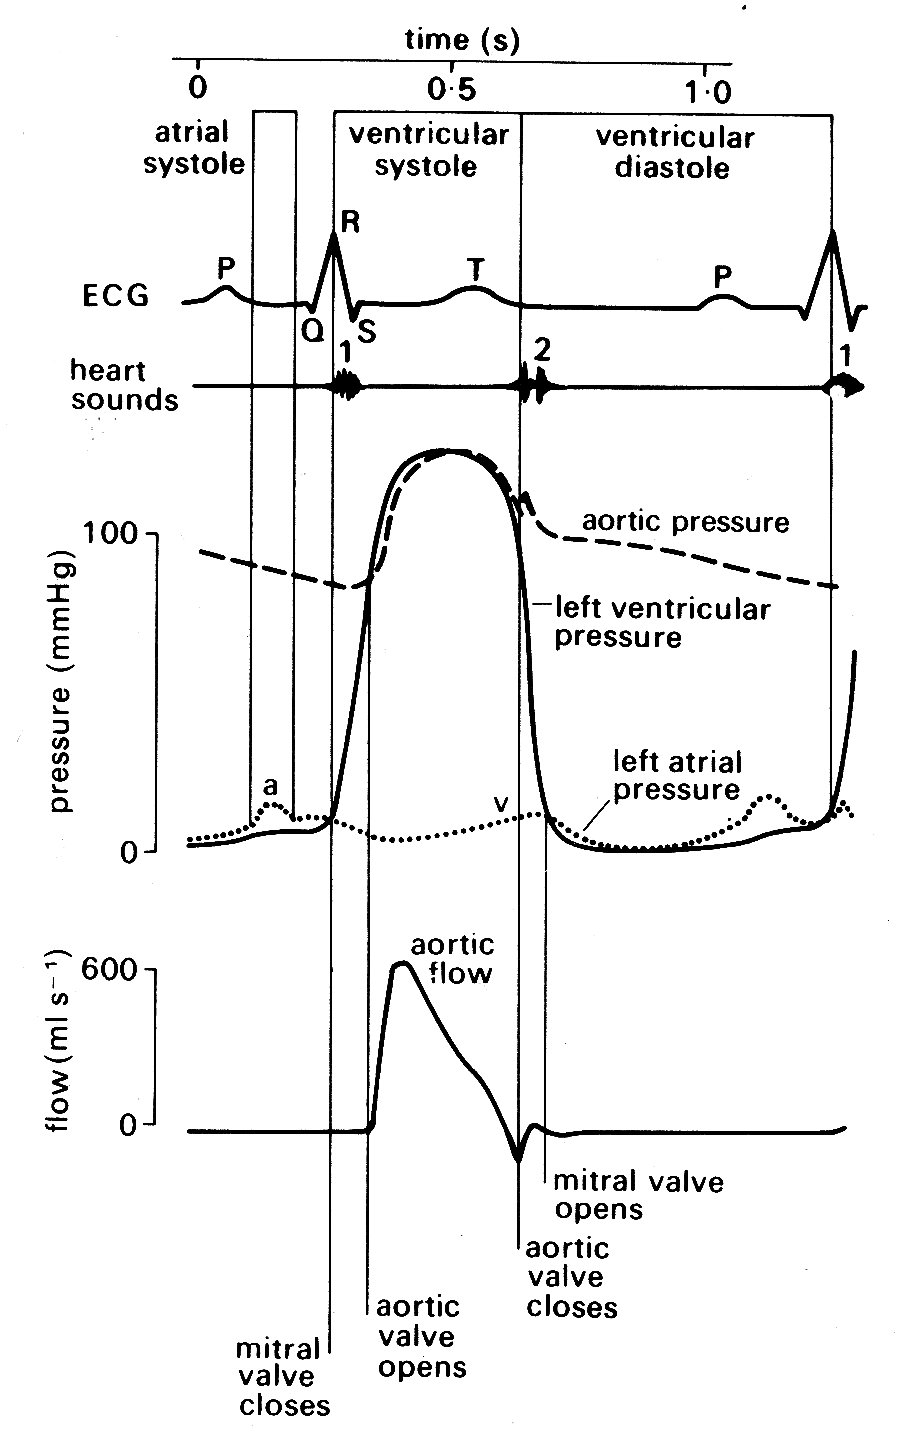 Chapter 11 semi diagrammatic illustration of the events on the left side of the heart during the cardiac cycle all pressures related to atmospheric ccuart Images